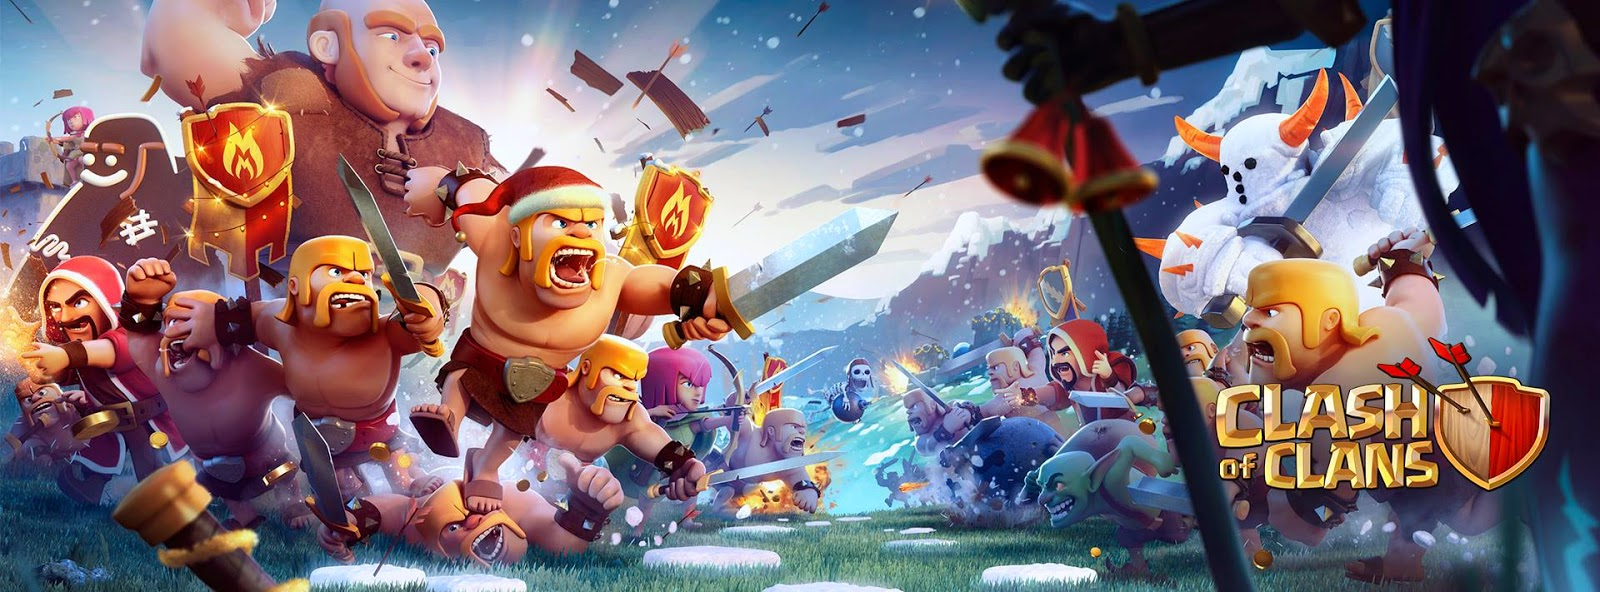 Clash of Clans HD Wallpapers